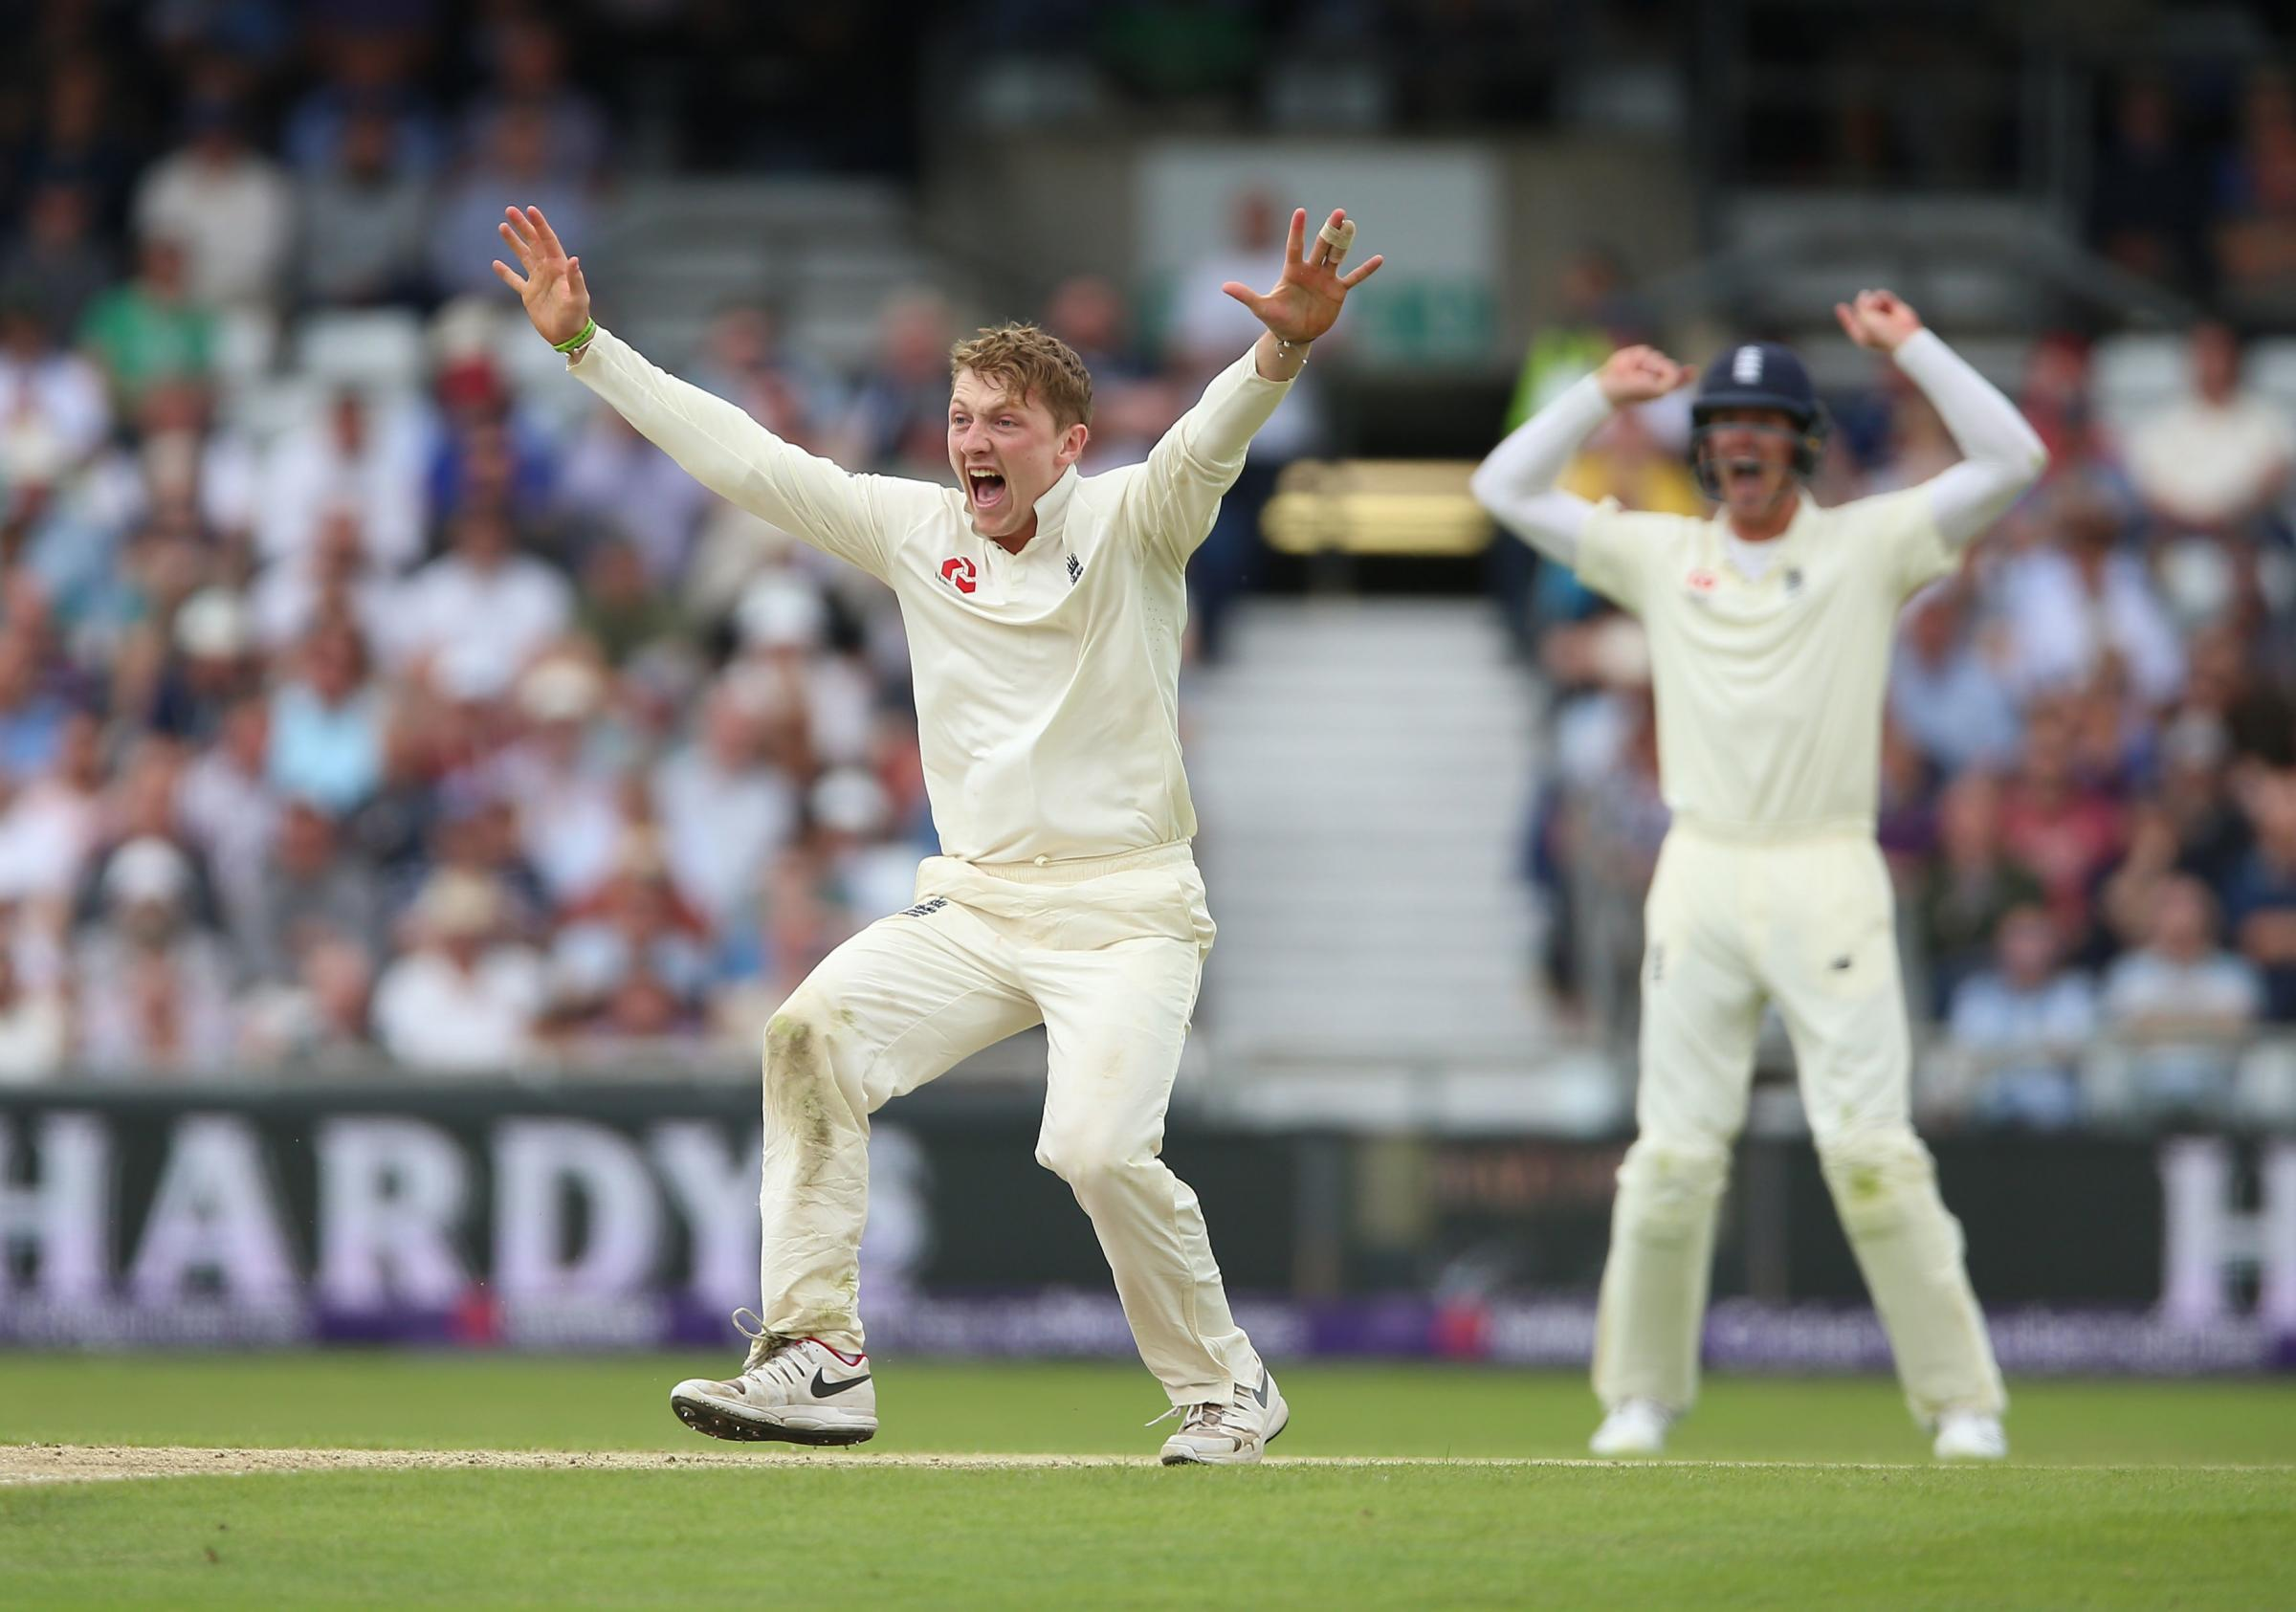 England's Dom Bess celebrates after taking the wicket of Pakistan's Imam ul-Haq during day three of the Second NatWest Test match at Headingley, Leeds. PRESS ASSOCIATION Photo. Picture date: Sunday June 3, 2018. See PA story CRICKET England. Photo